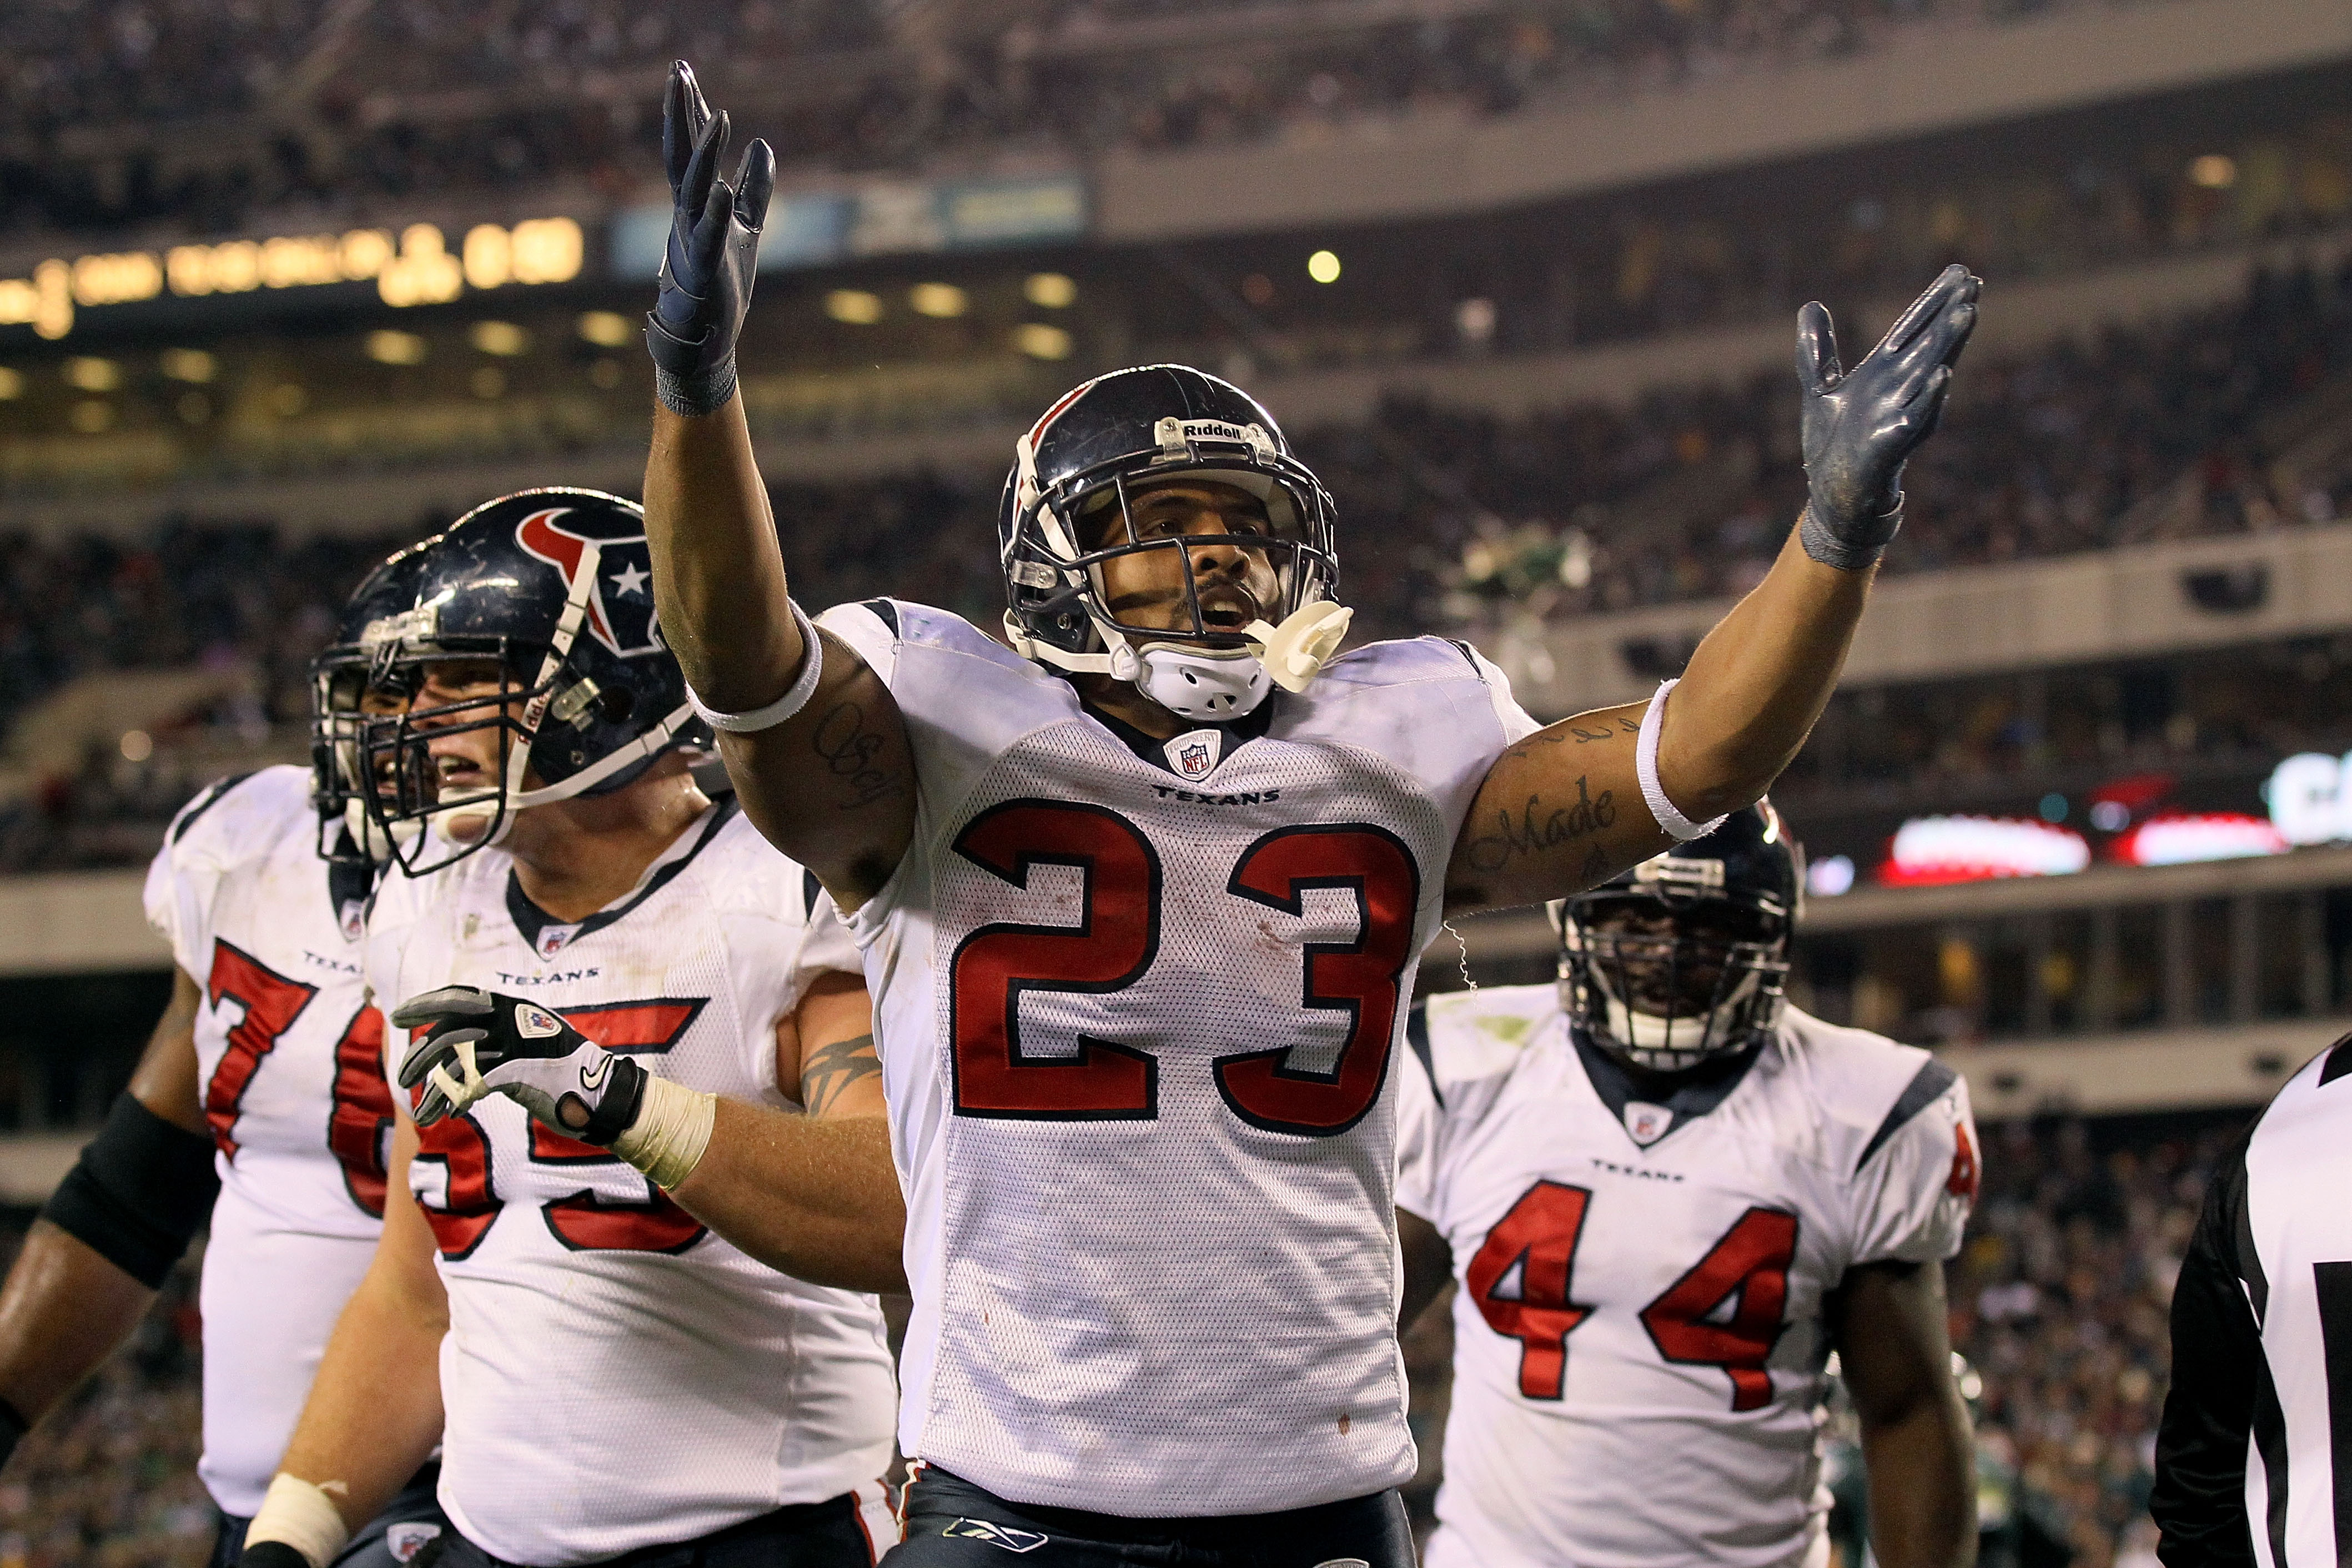 PHILADELPHIA, PA - DECEMBER 02:  Arian Foster #23 of the Houston Texans celebrates after he scored a 3-yard rushing touchdown in the third quarter against the Philadelphia Eagles at Lincoln Financial Field on December 2, 2010 in Philadelphia, Pennsylvania